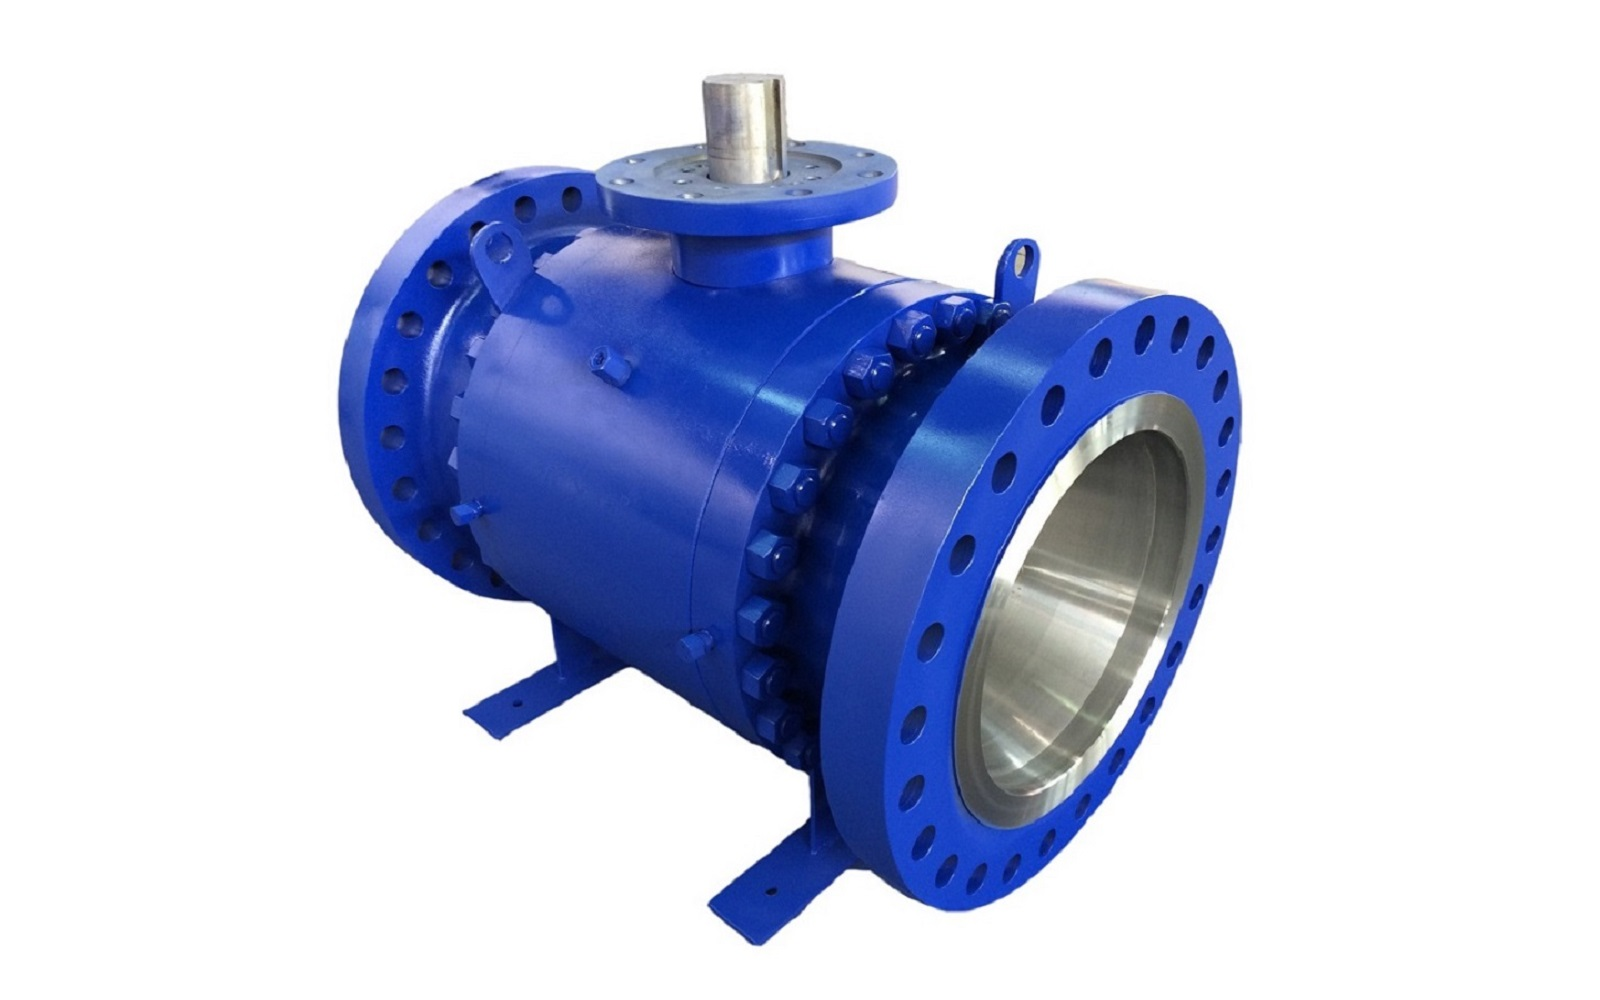 3-Piece Trunnion RB Forged Ball Valve